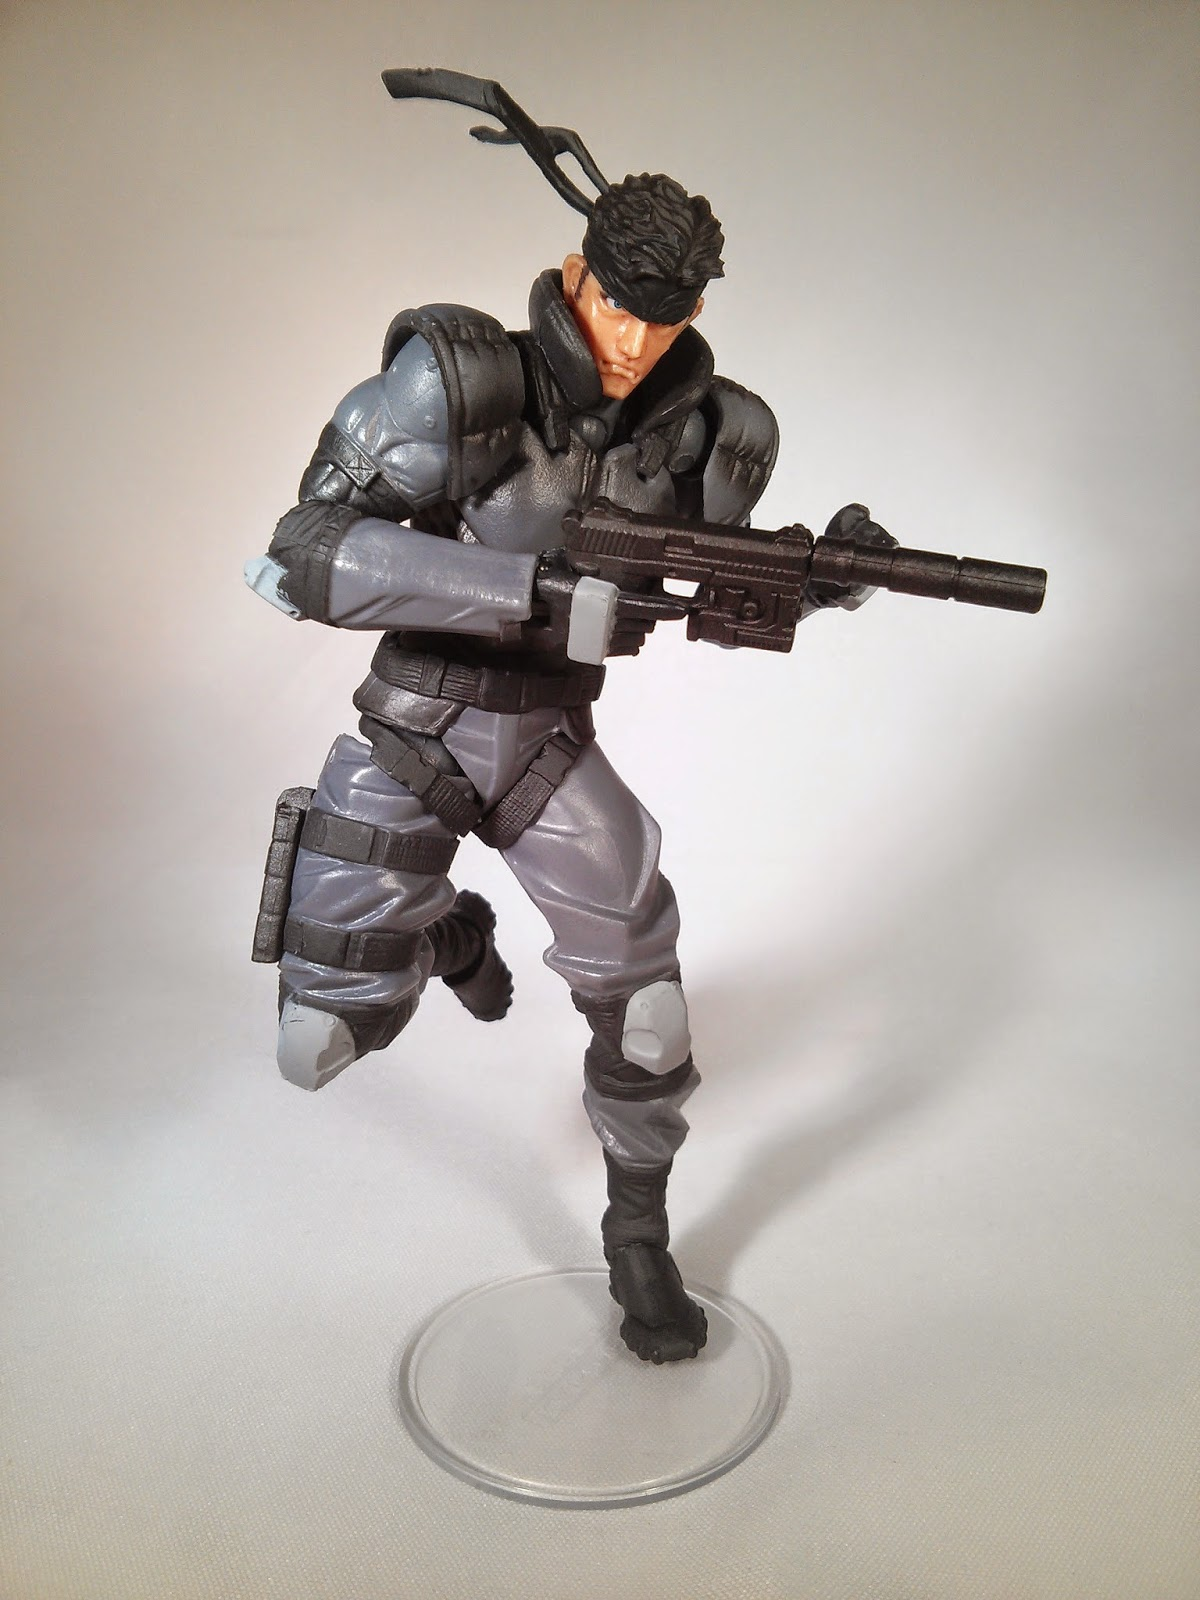 Solid Snake in running awesomely pose